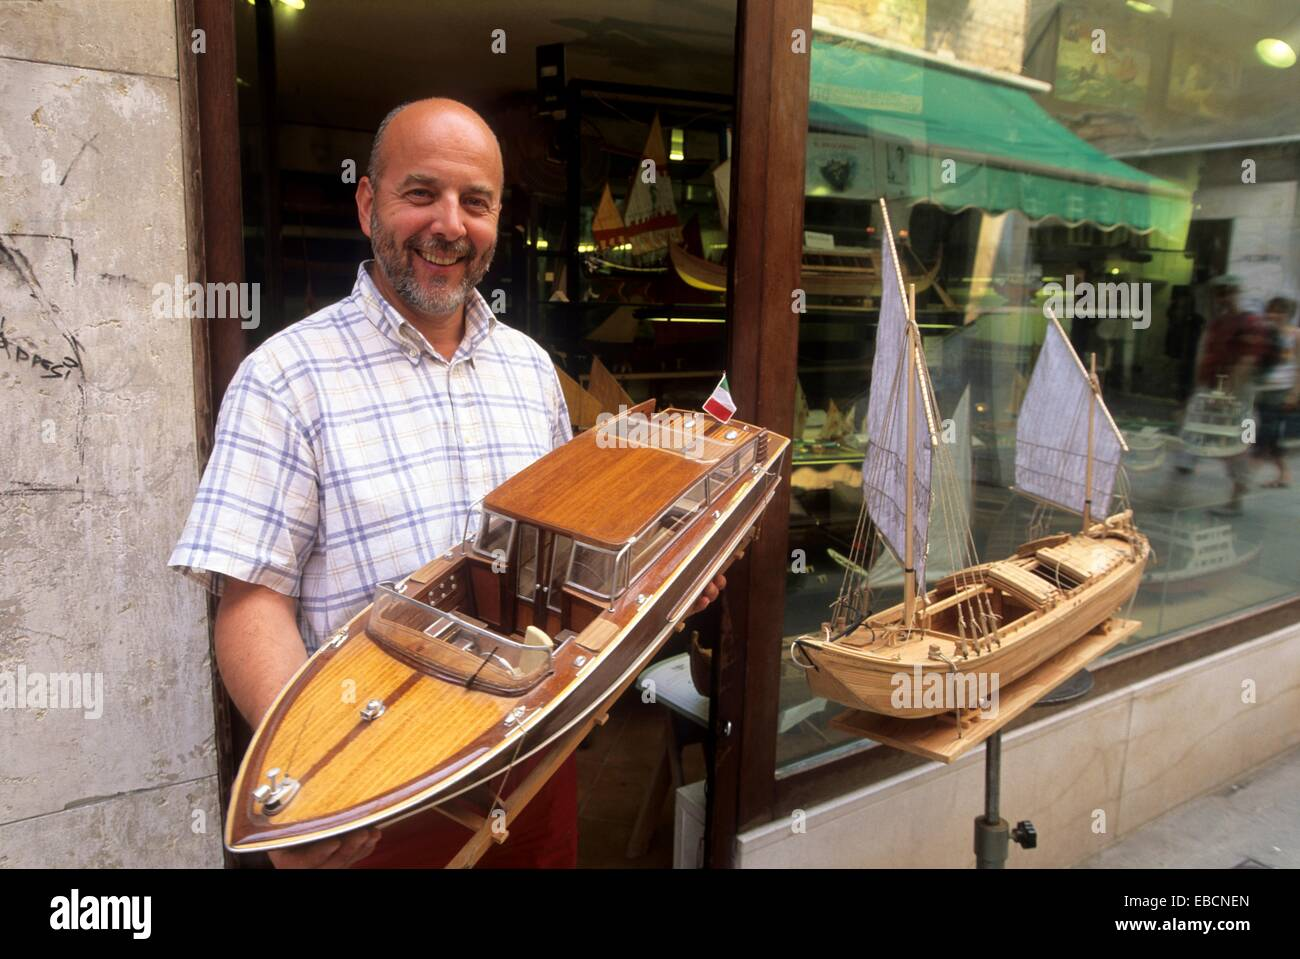 Mr Gilberto Penso holding one of his models, a Venetian taxi-boat, San Polo district, Venice, Veneto region, Italy, - Stock Image